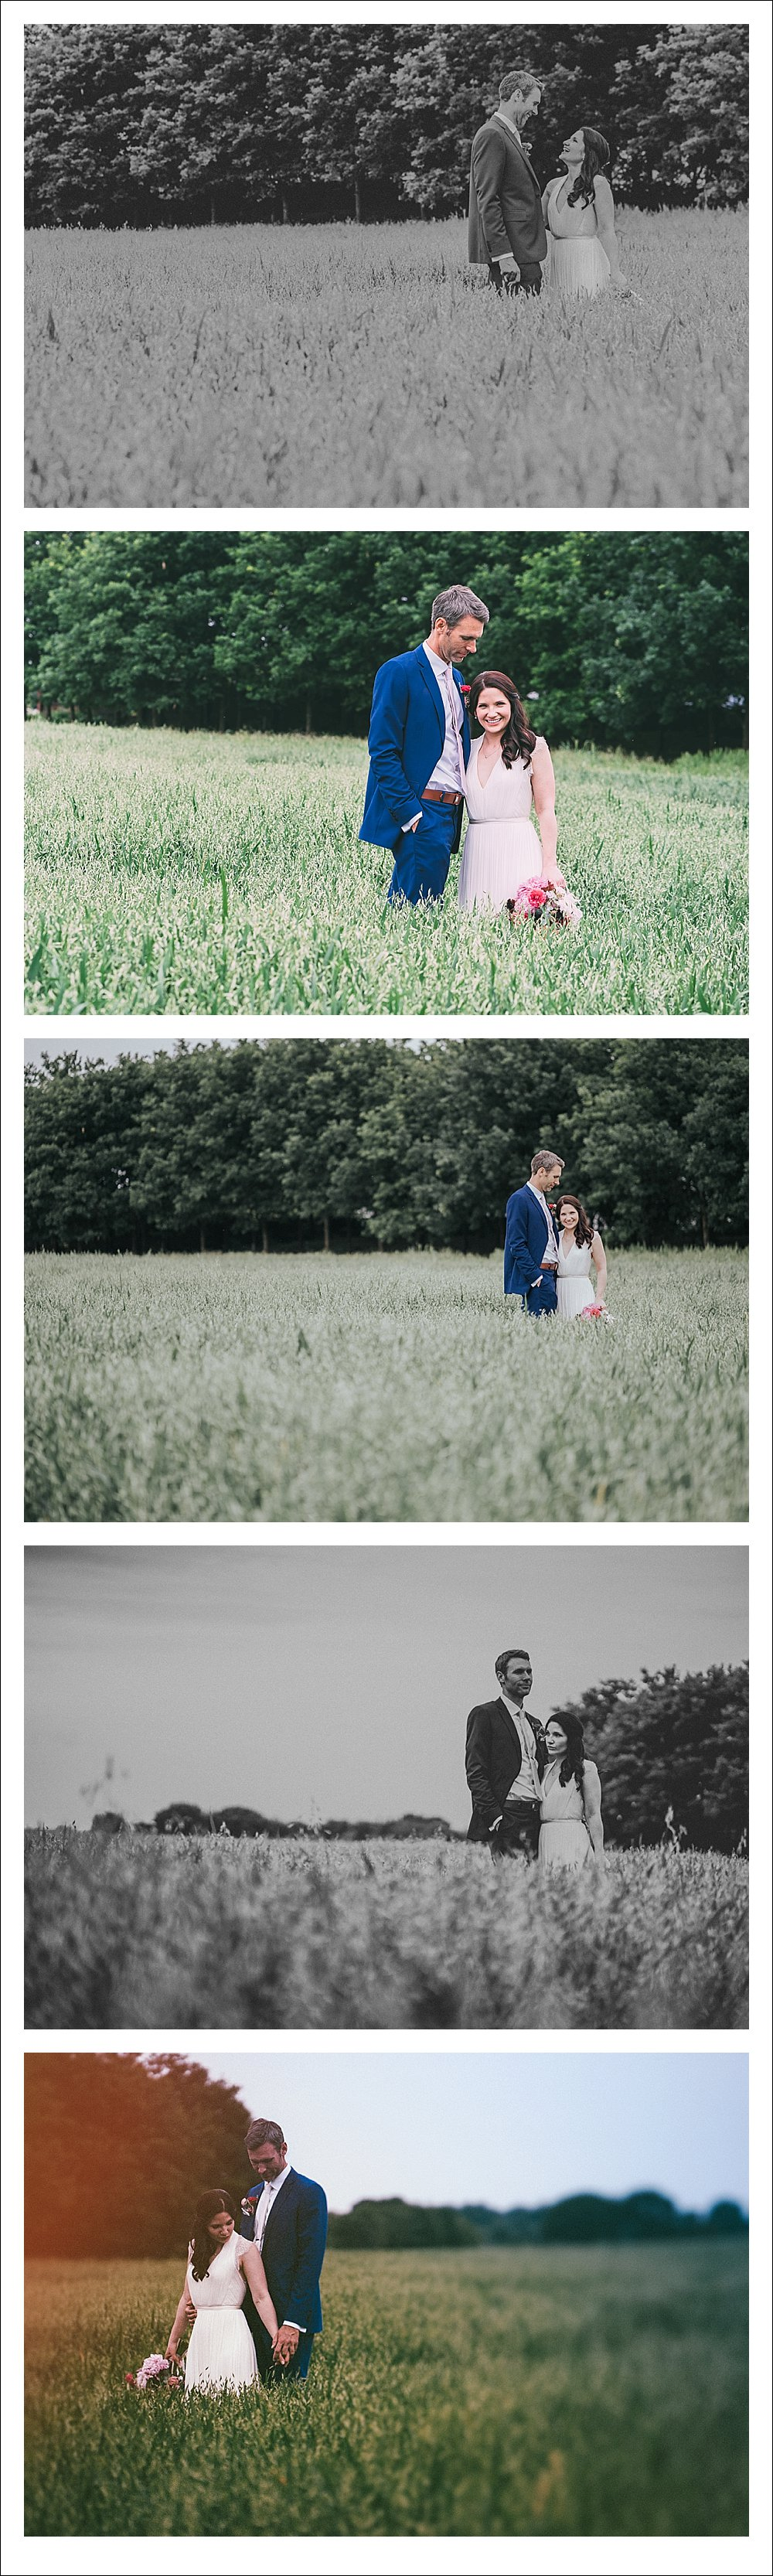 Smoke Grenade by Chris Deller Photography Tithe Barn Wedding